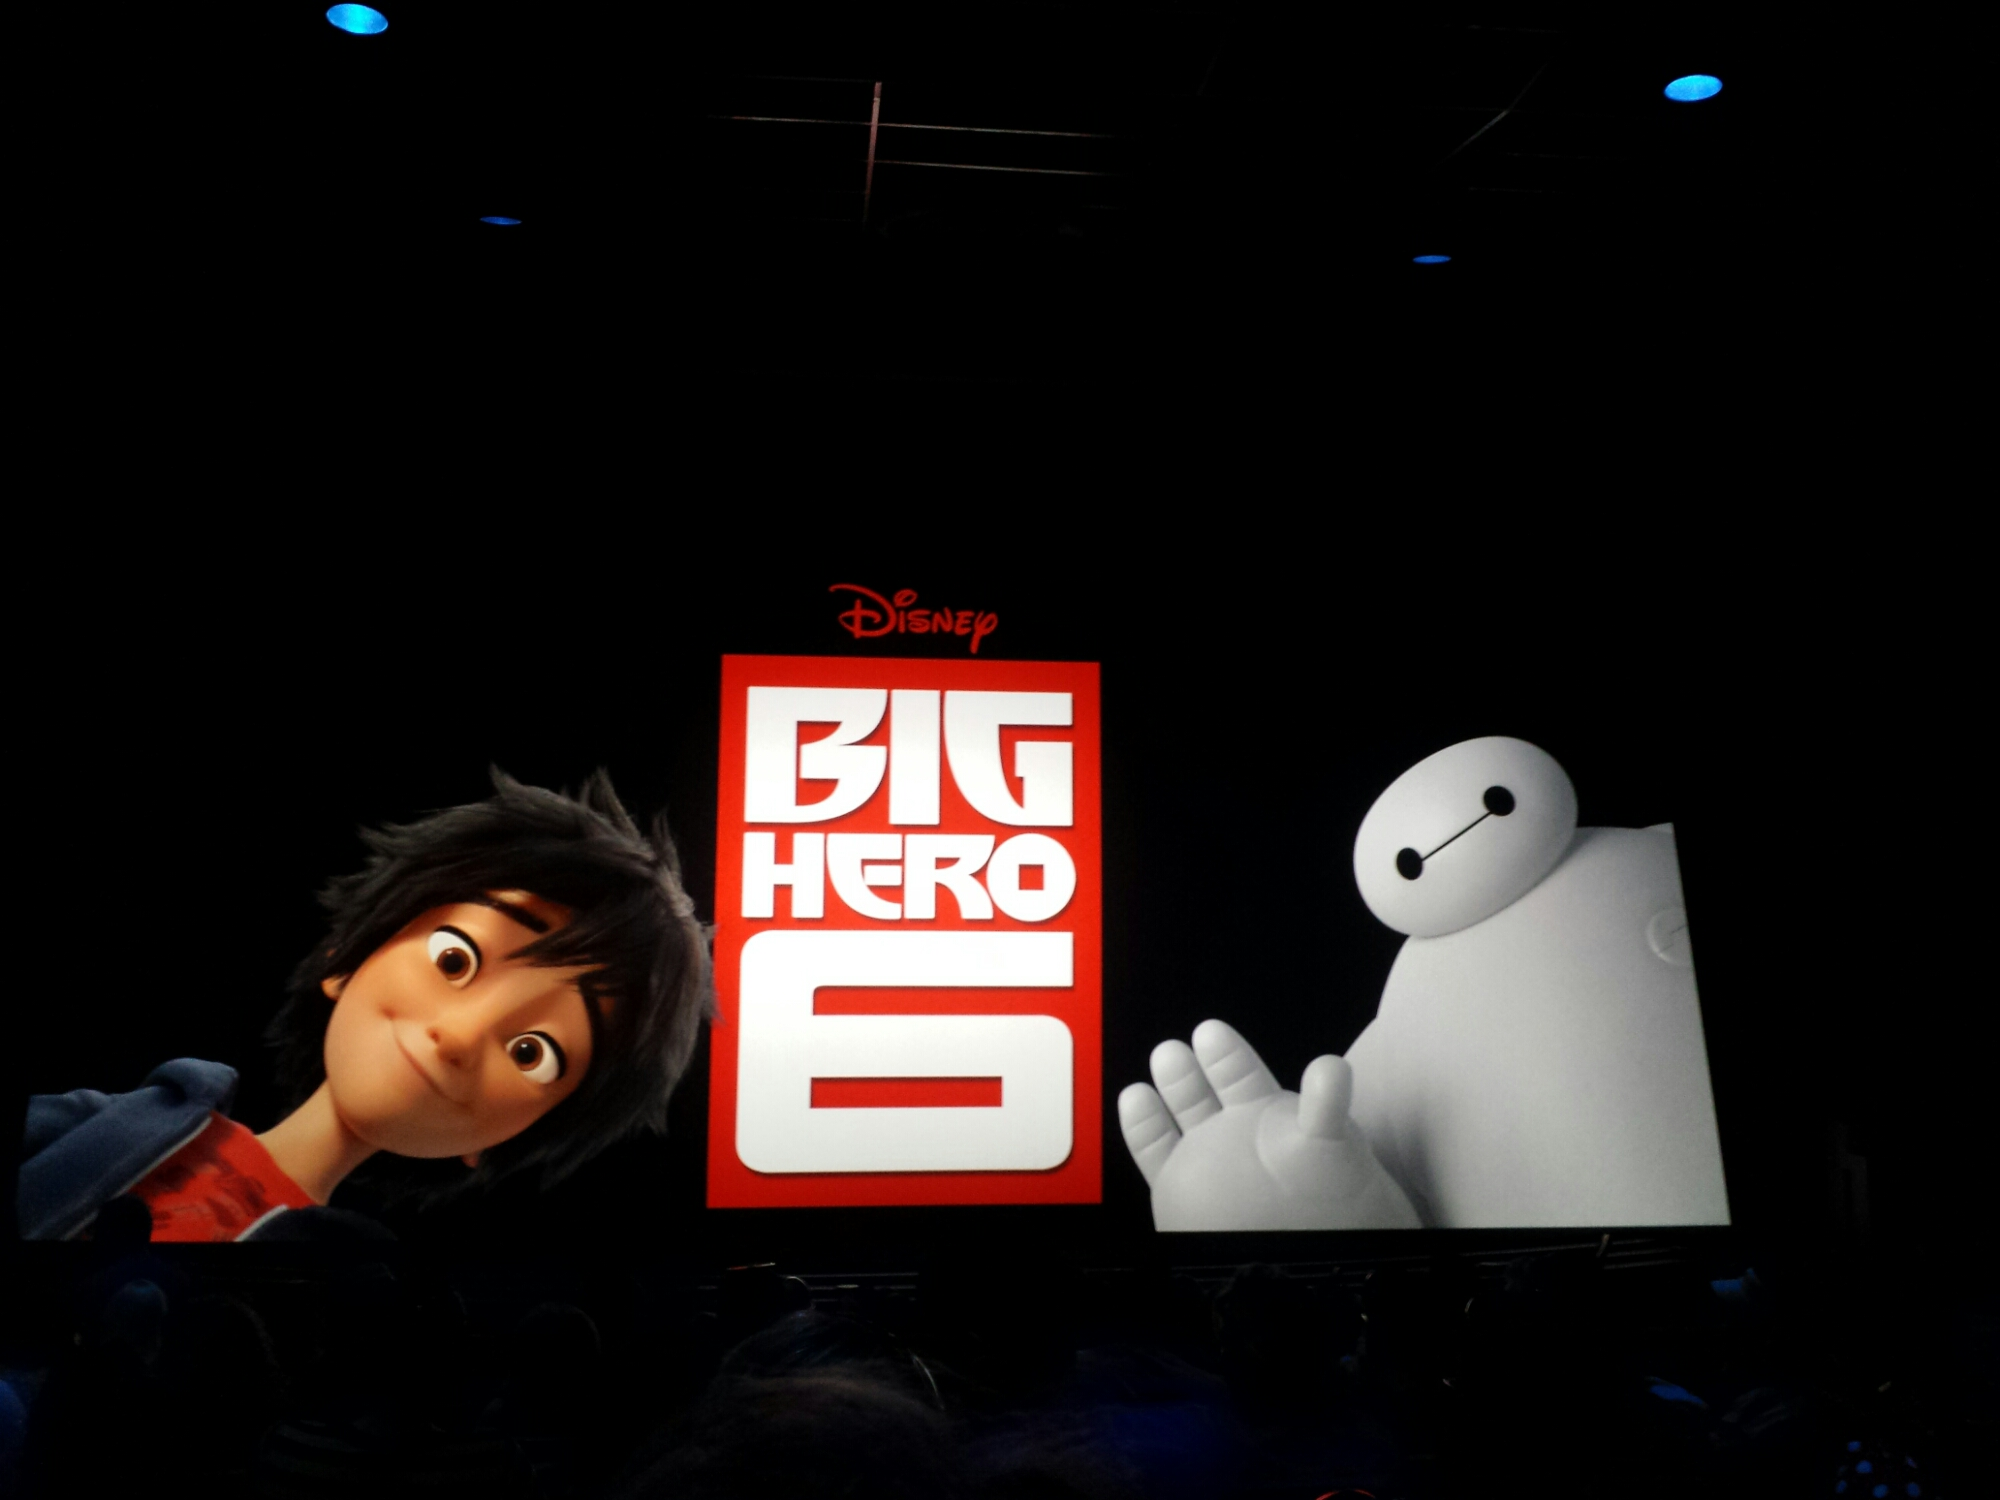 Time for the #BigHero6 preview #Disneyland